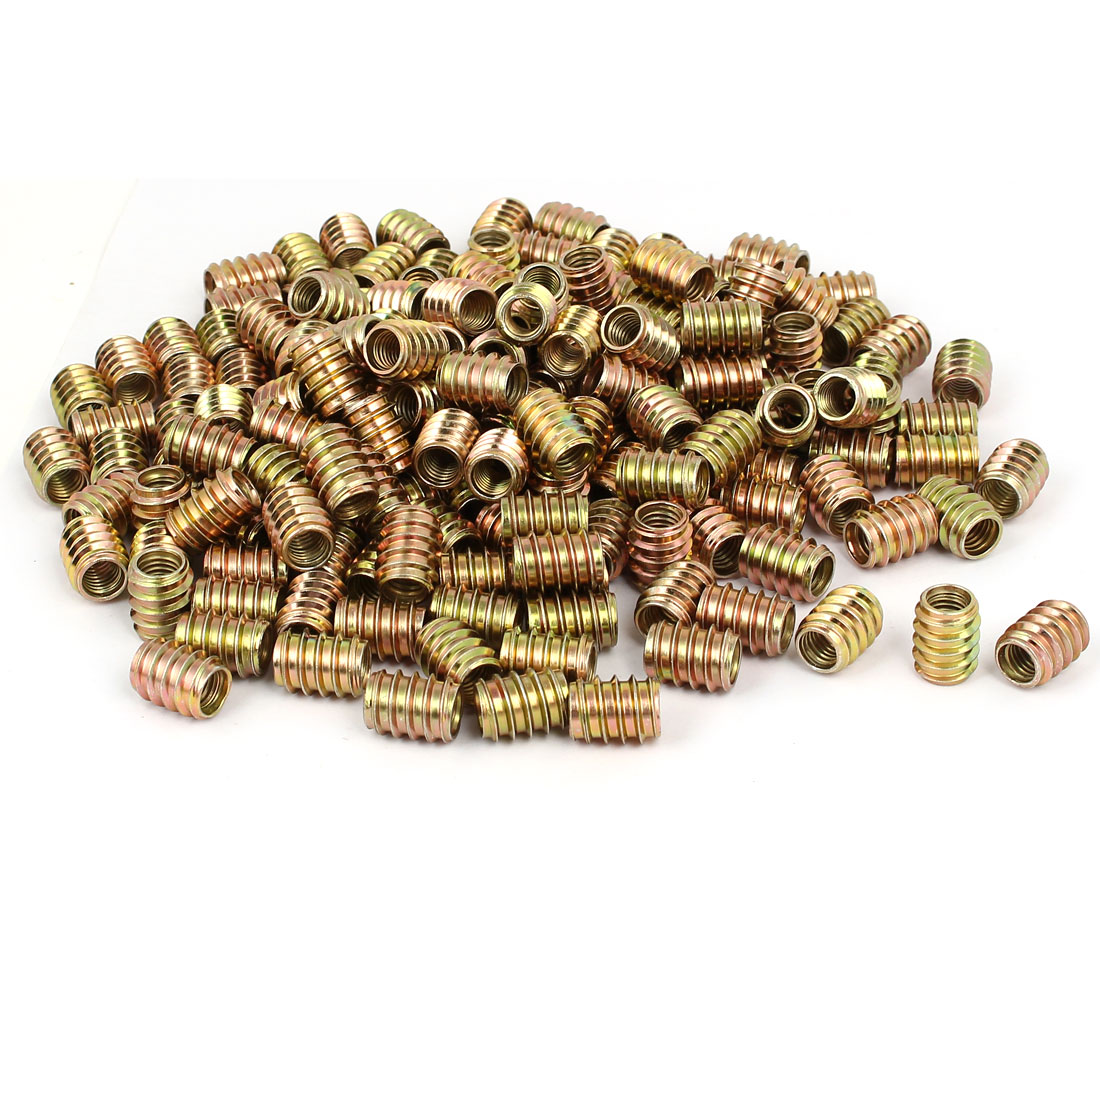 Wood Furniture Insert Screw E-Nut Bronze Tone M8 x 17mm 300pcs